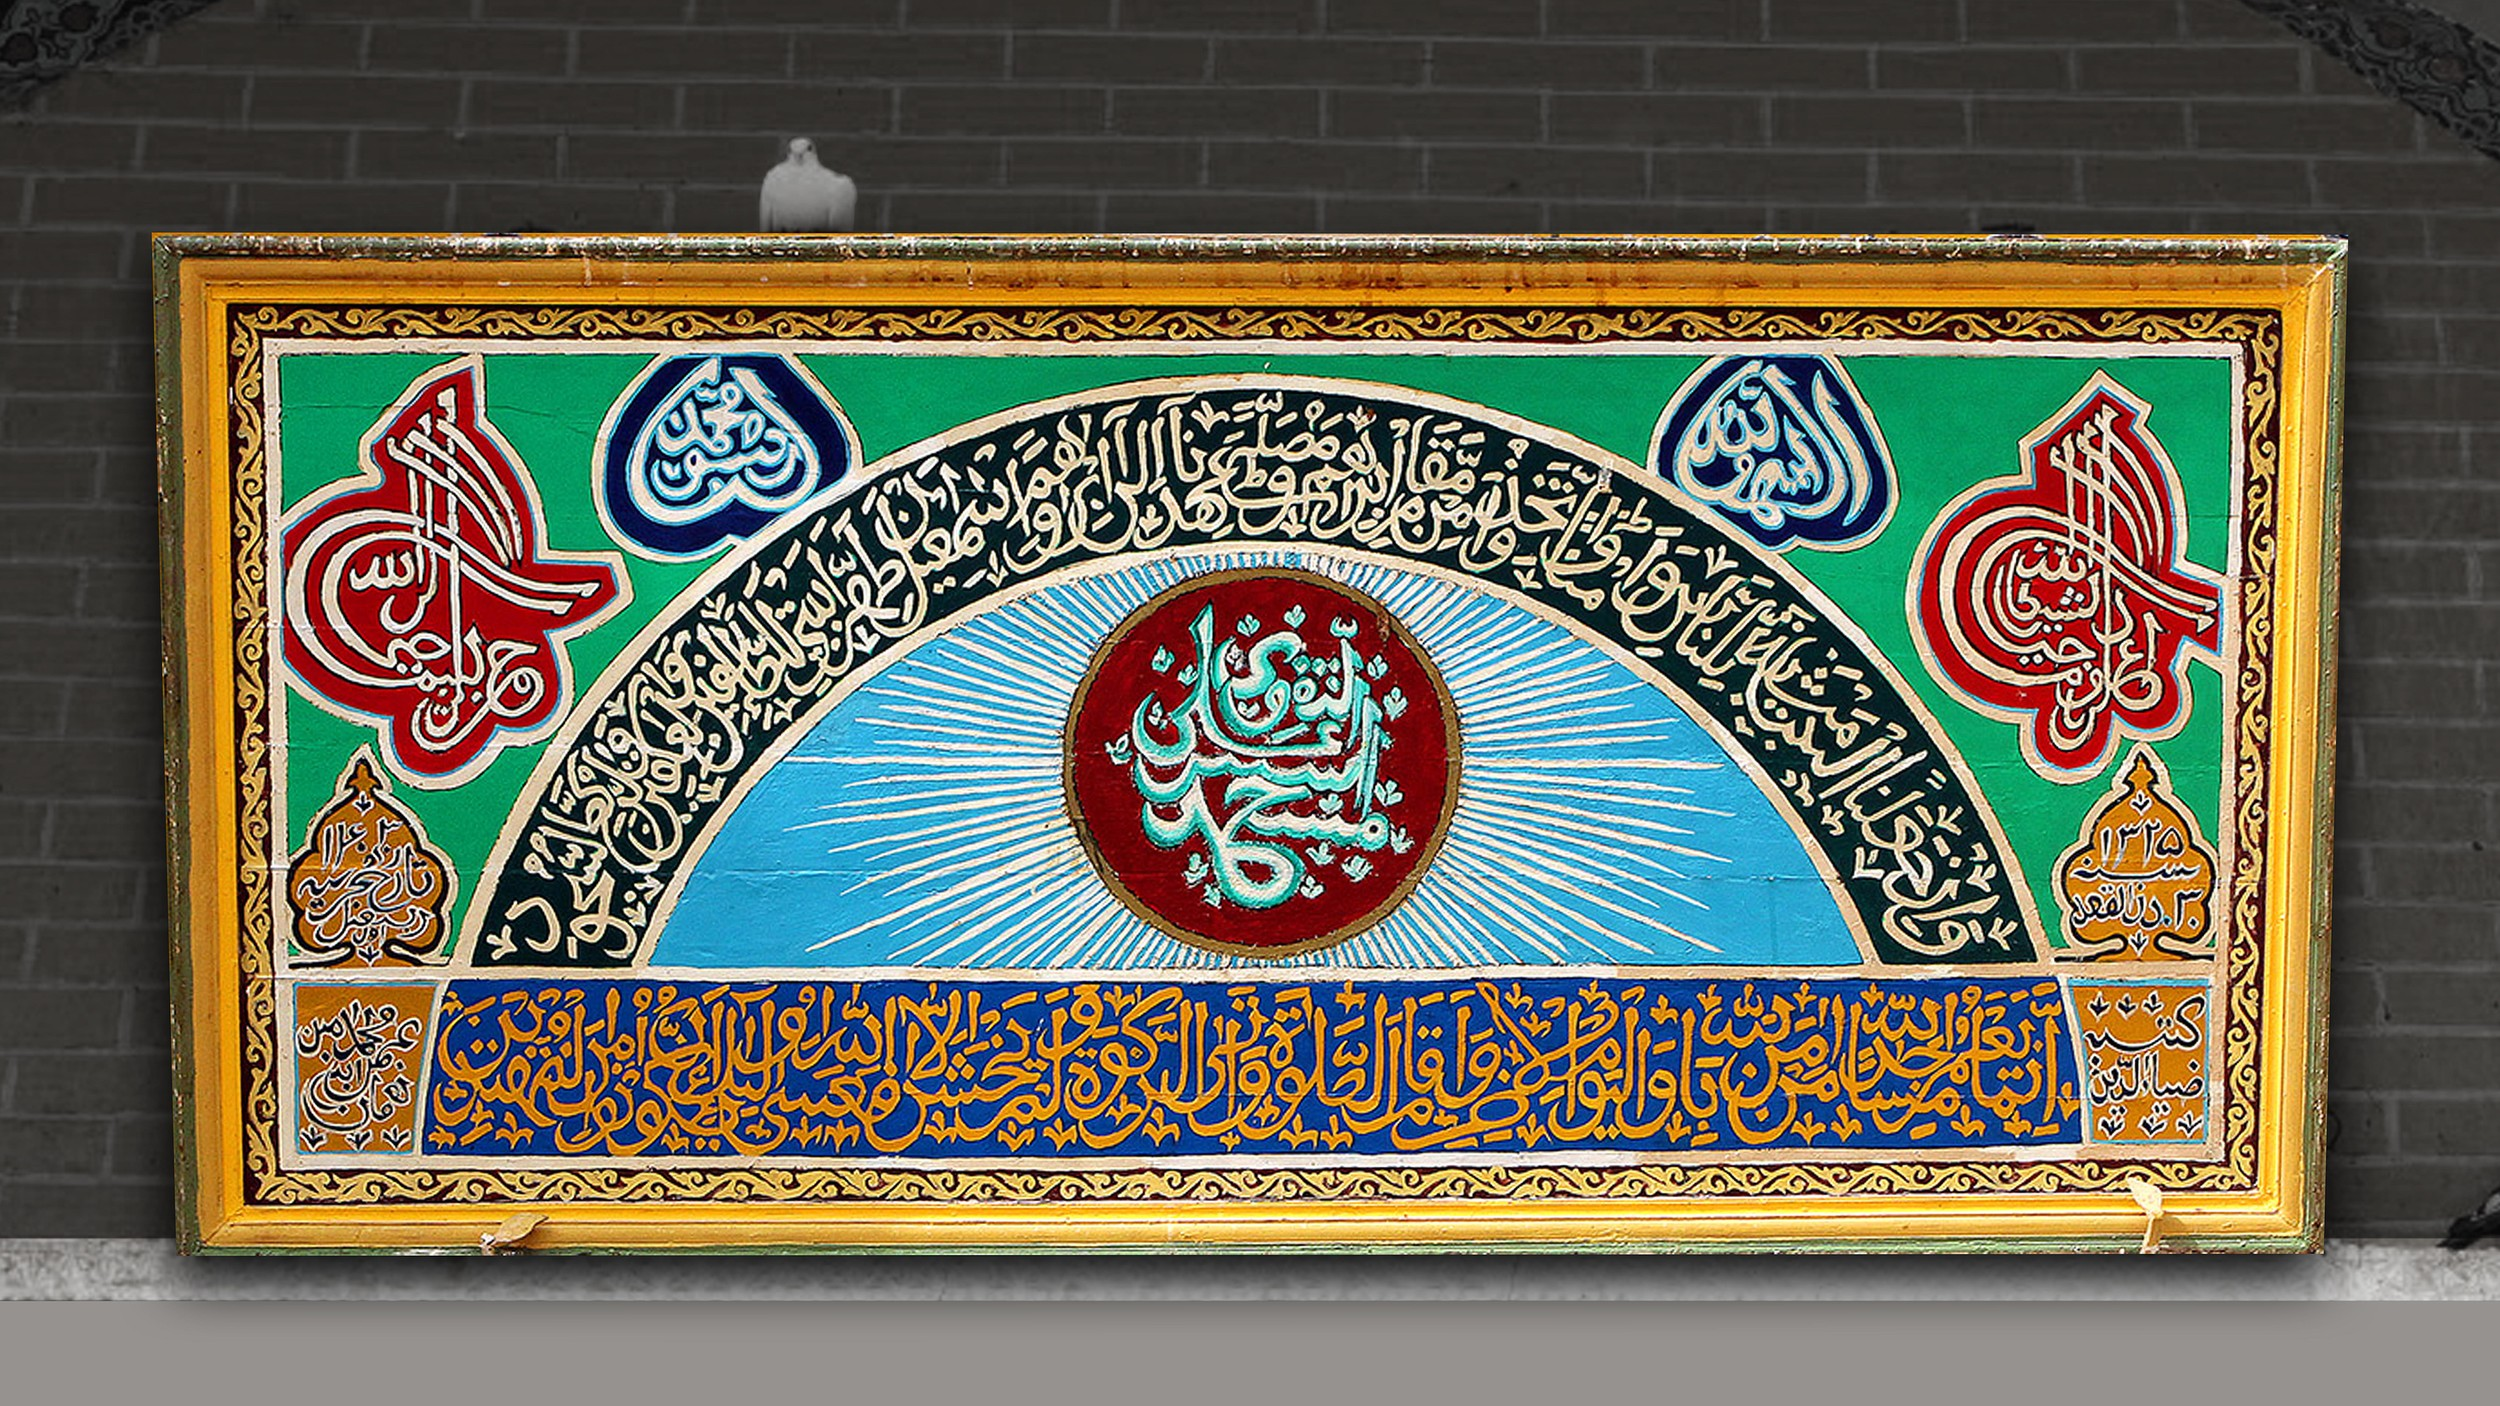 A close up view of the plaque adorning the front entrance of Id Kah mosque, taken before its removal.